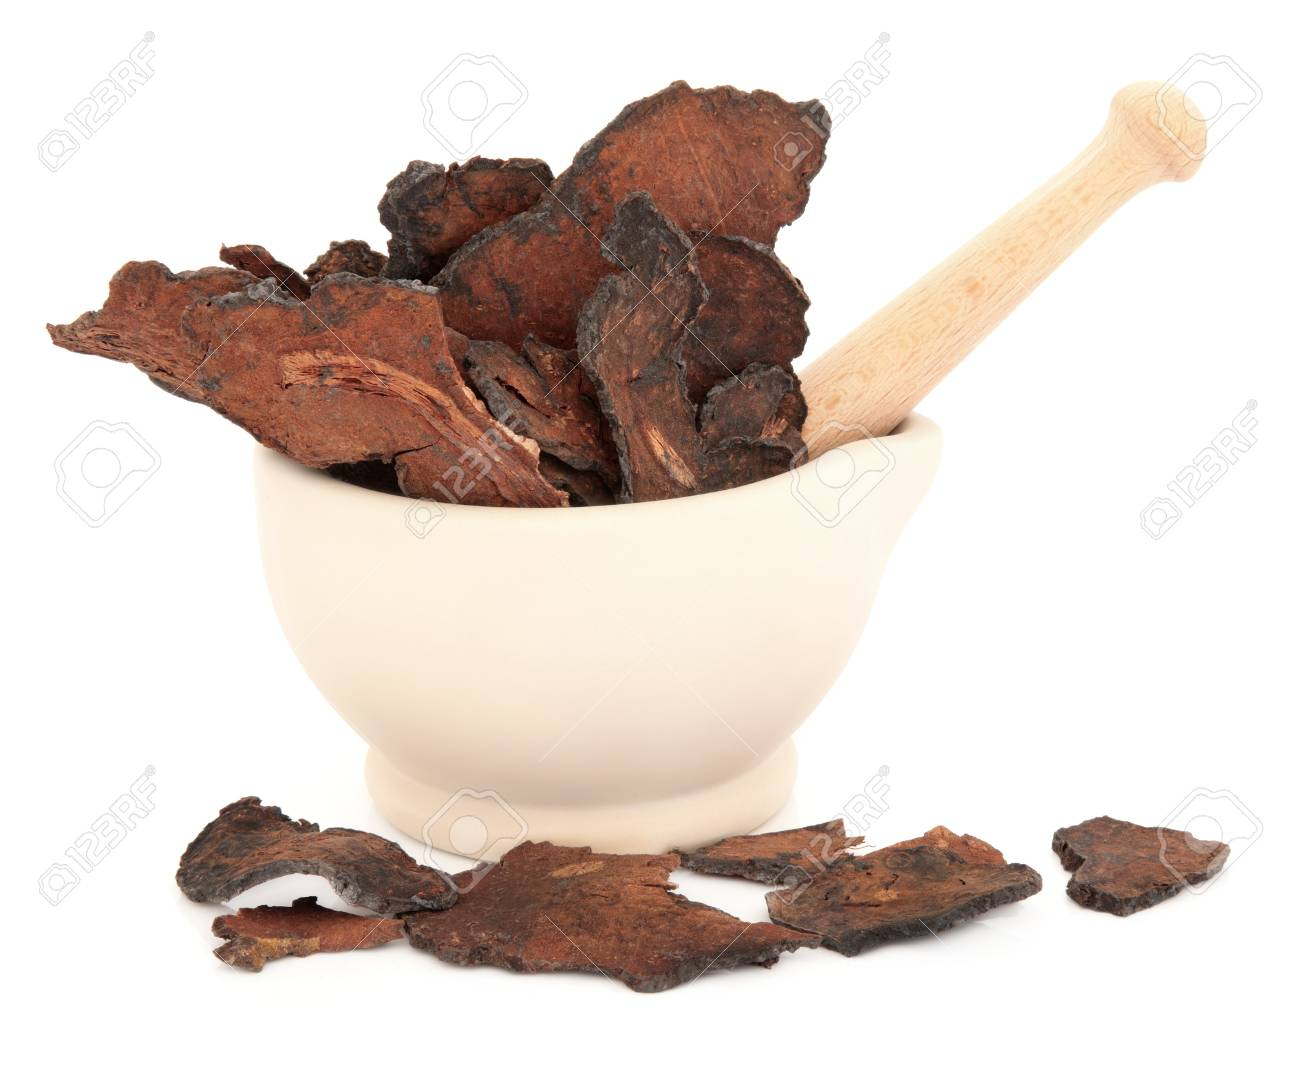 Chinese Herbal Medicine Fleece Flower Root In A Stone Mortar Stock